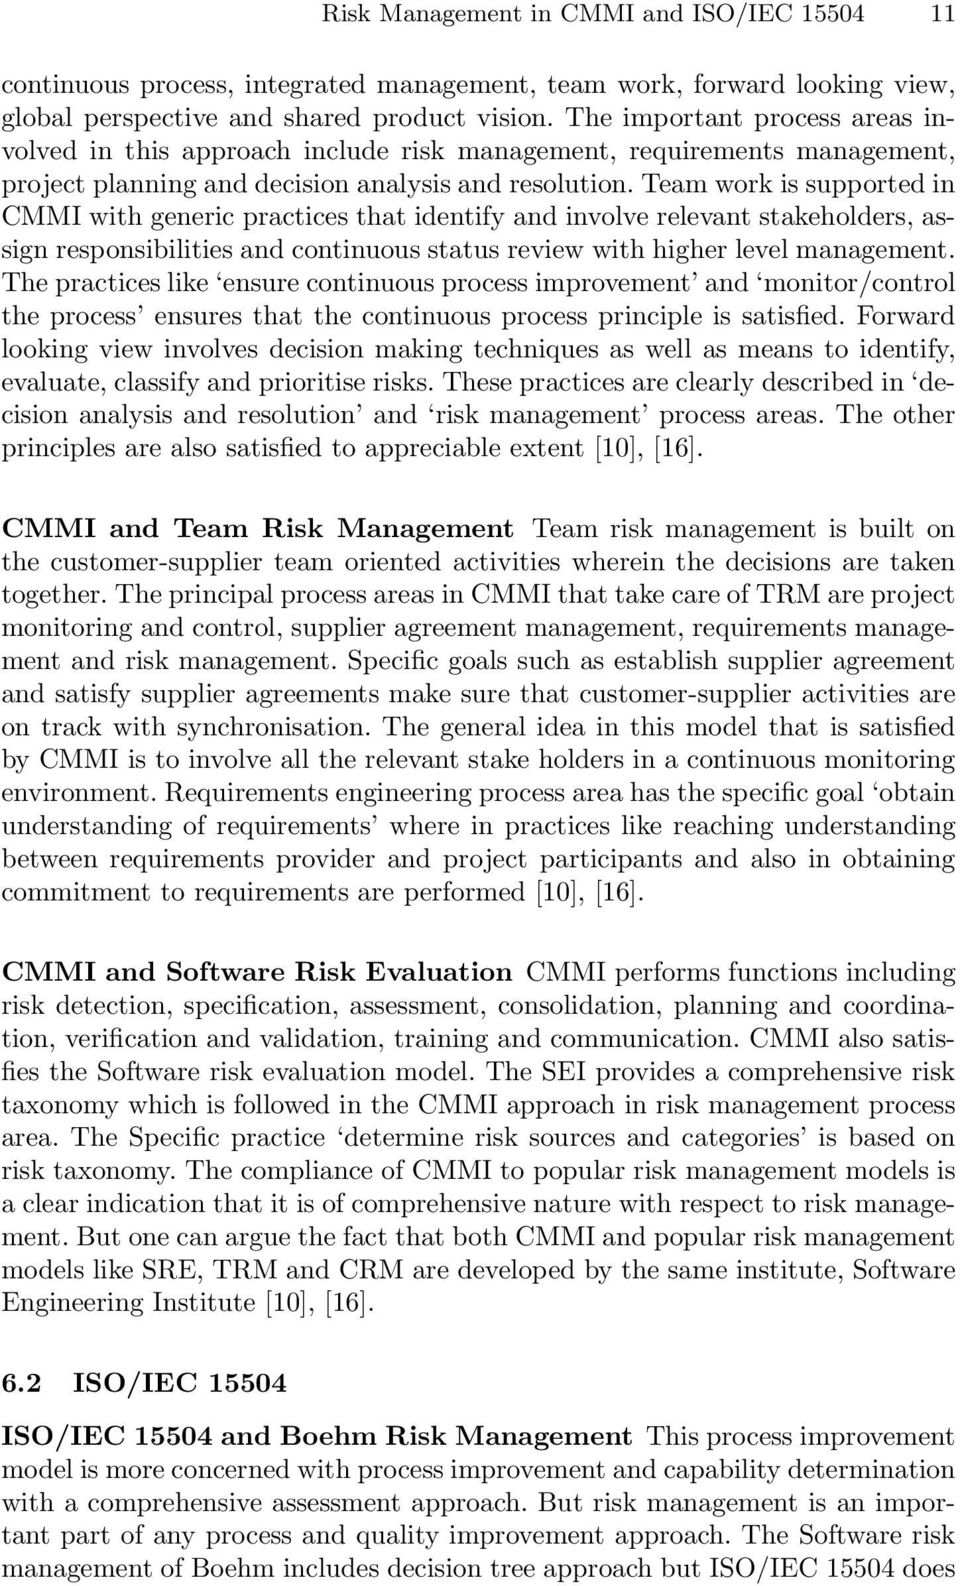 Team work is supported in CMMI with generic practices that identify and involve relevant stakeholders, assign responsibilities and continuous status review with higher level management.